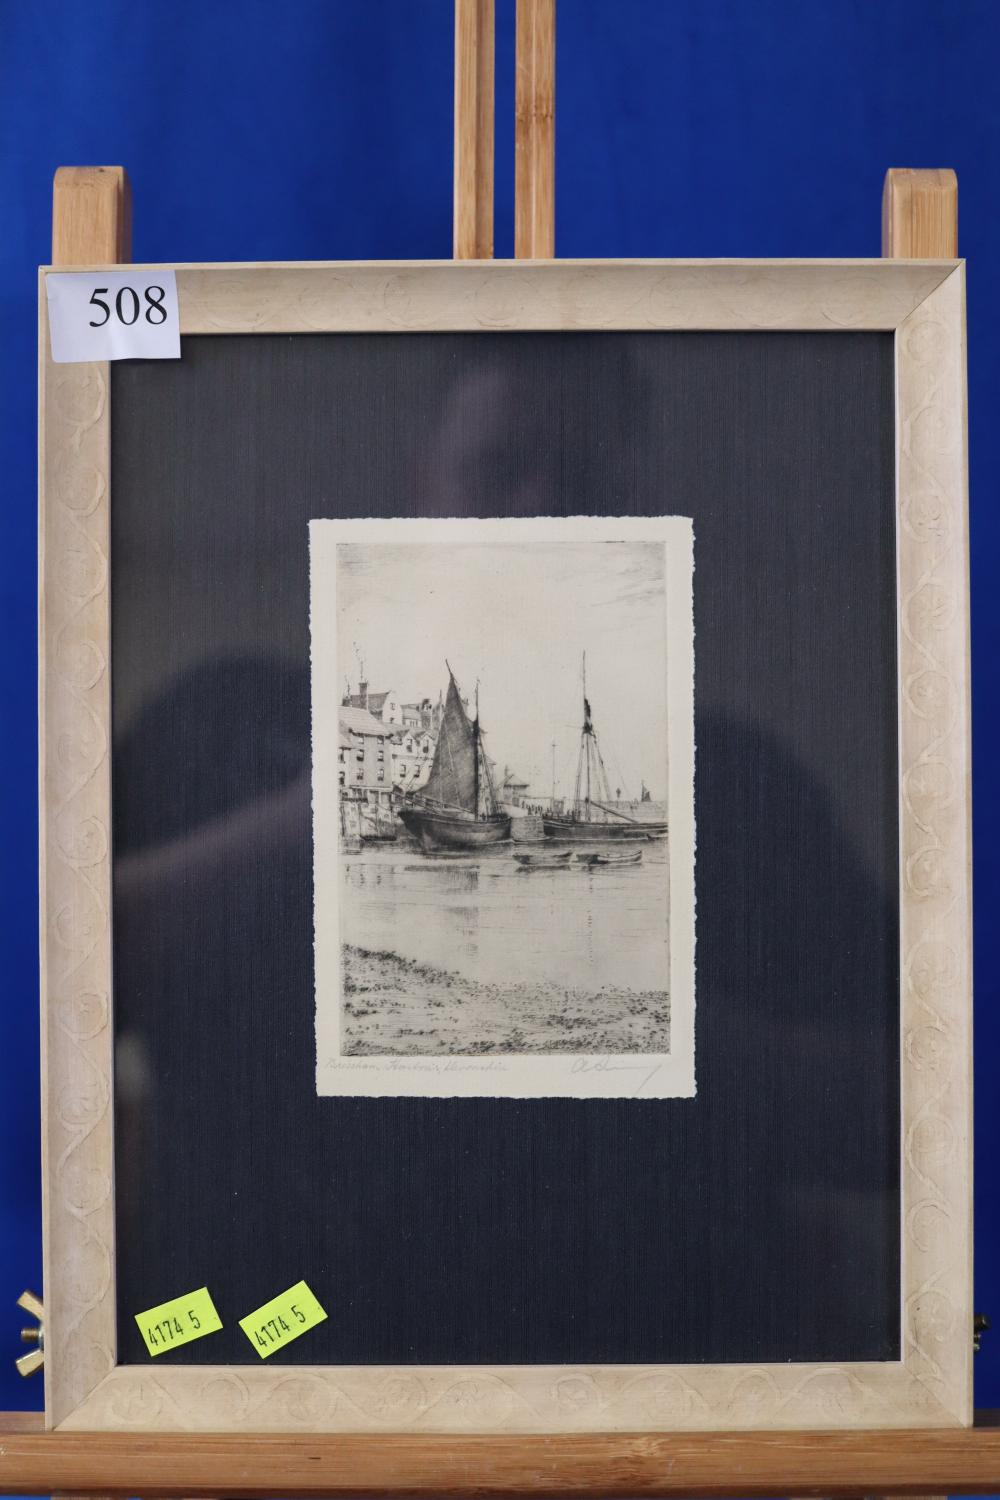 ORIGINAL ETCHING OF BRIXHAM HARBOUR DEVONSHIRE BY A SIMES